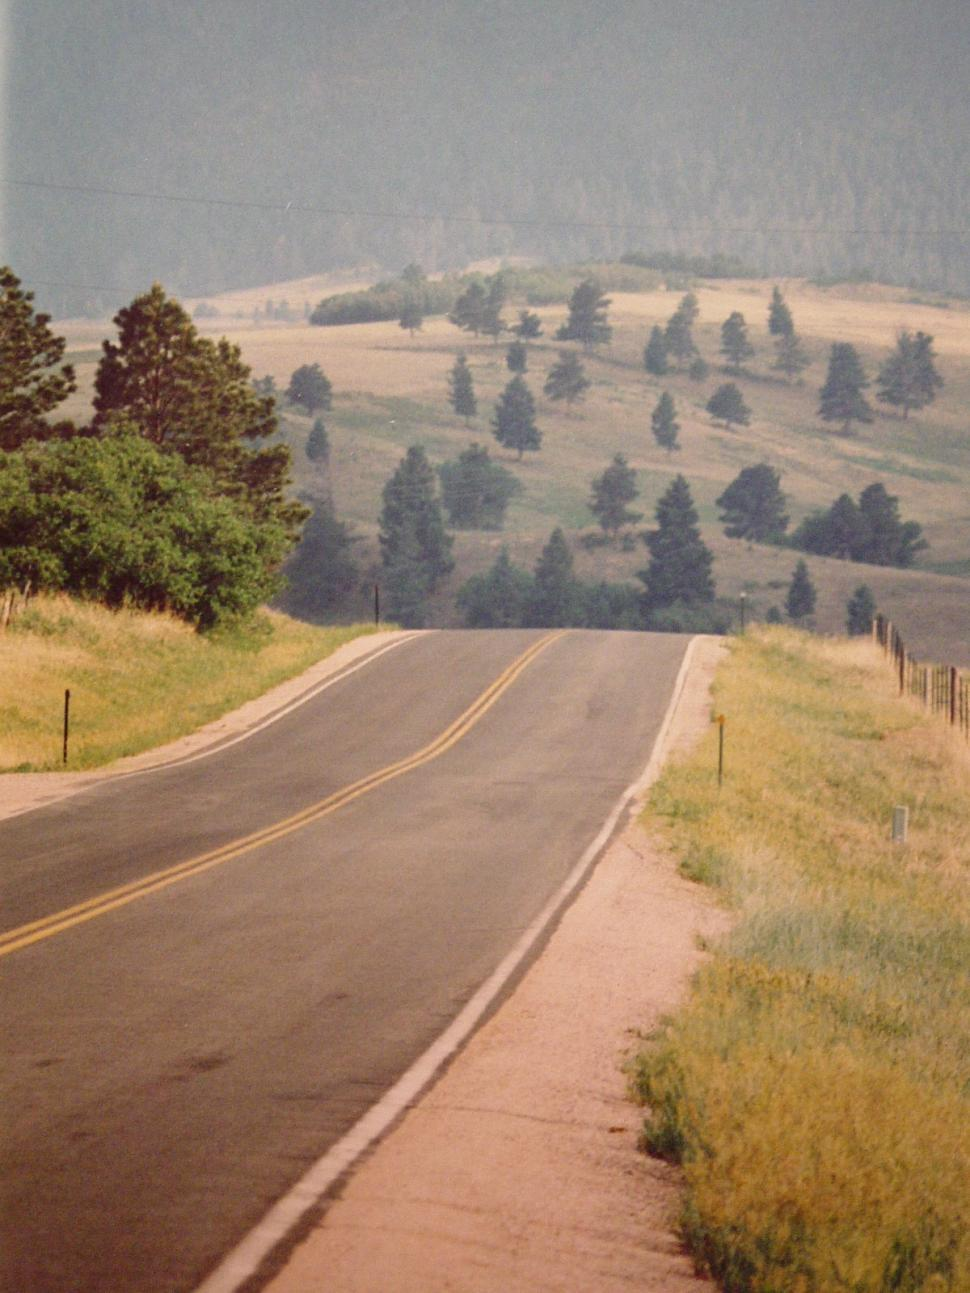 Download Free Stock HD Photo of Road Downhill to Somewhere Online